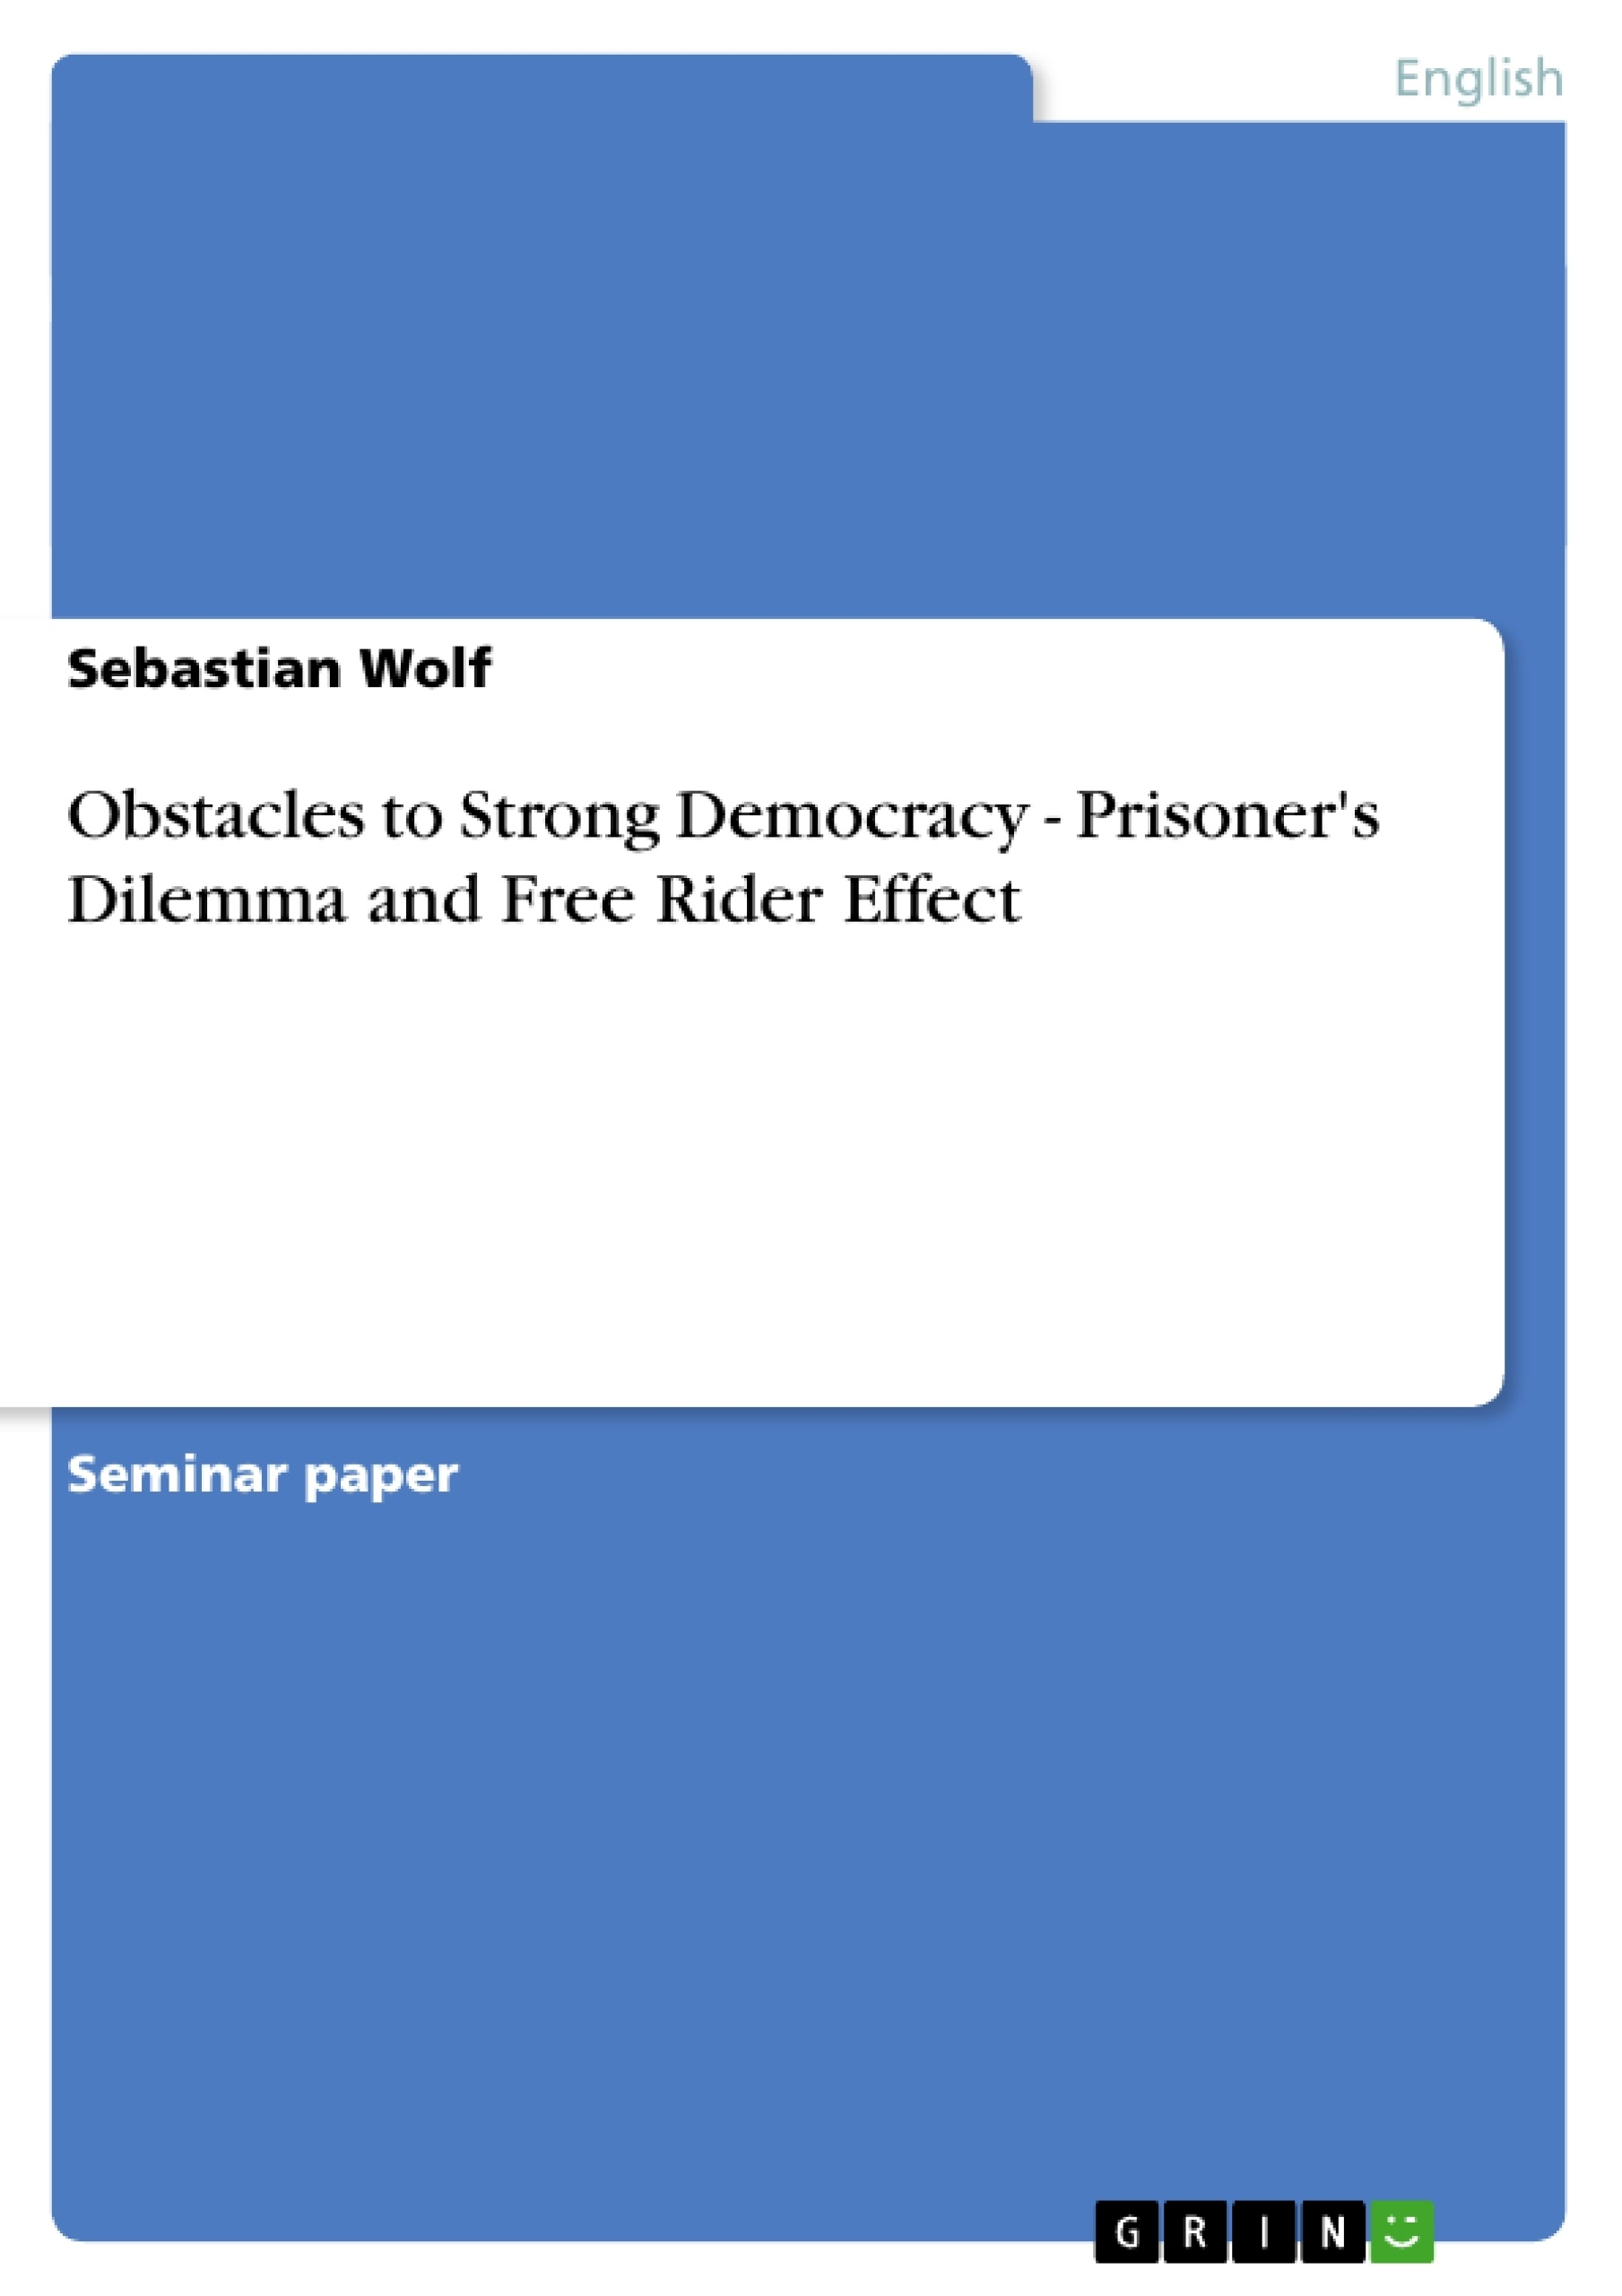 Title: Obstacles to Strong Democracy - Prisoner's Dilemma and Free Rider Effect